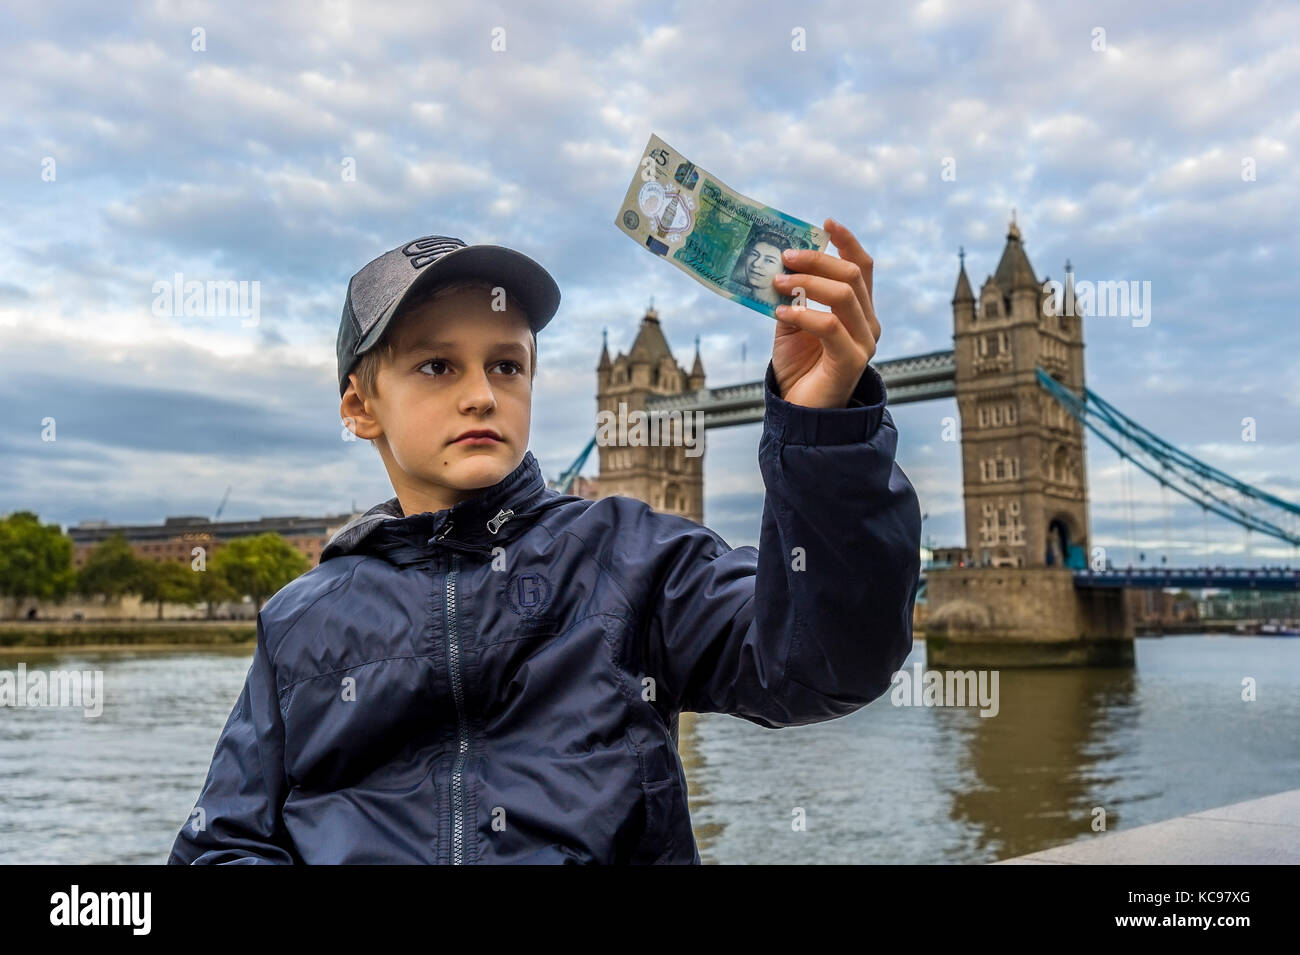 boy in baseball cap holding and looking at new british 5 pound banknote - Stock Image